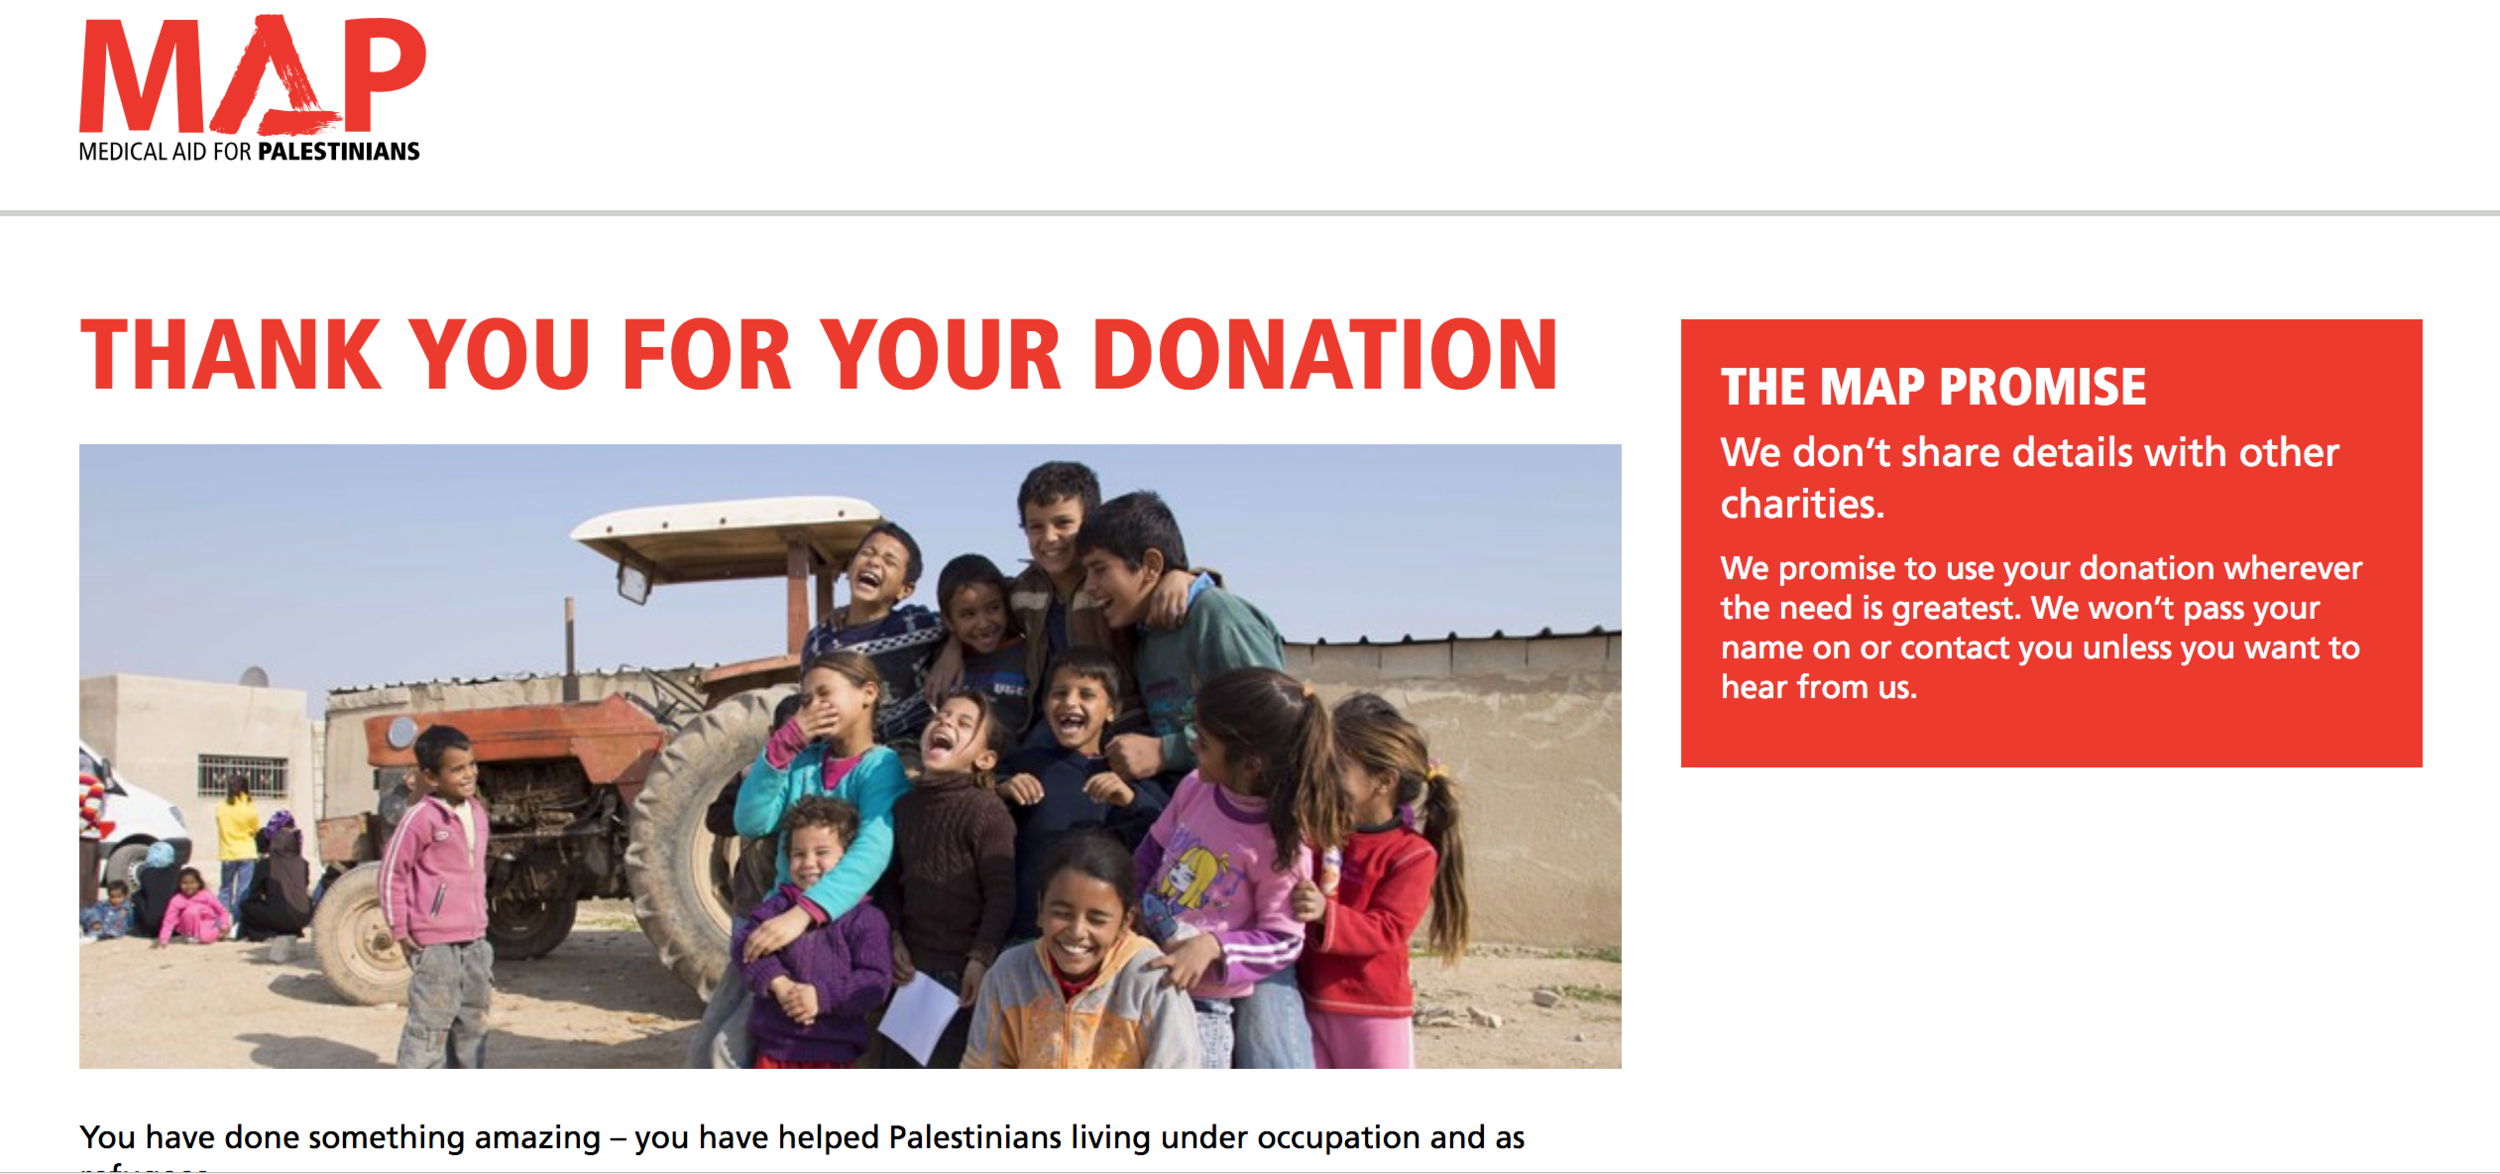 Screen shot from our donation to MAP